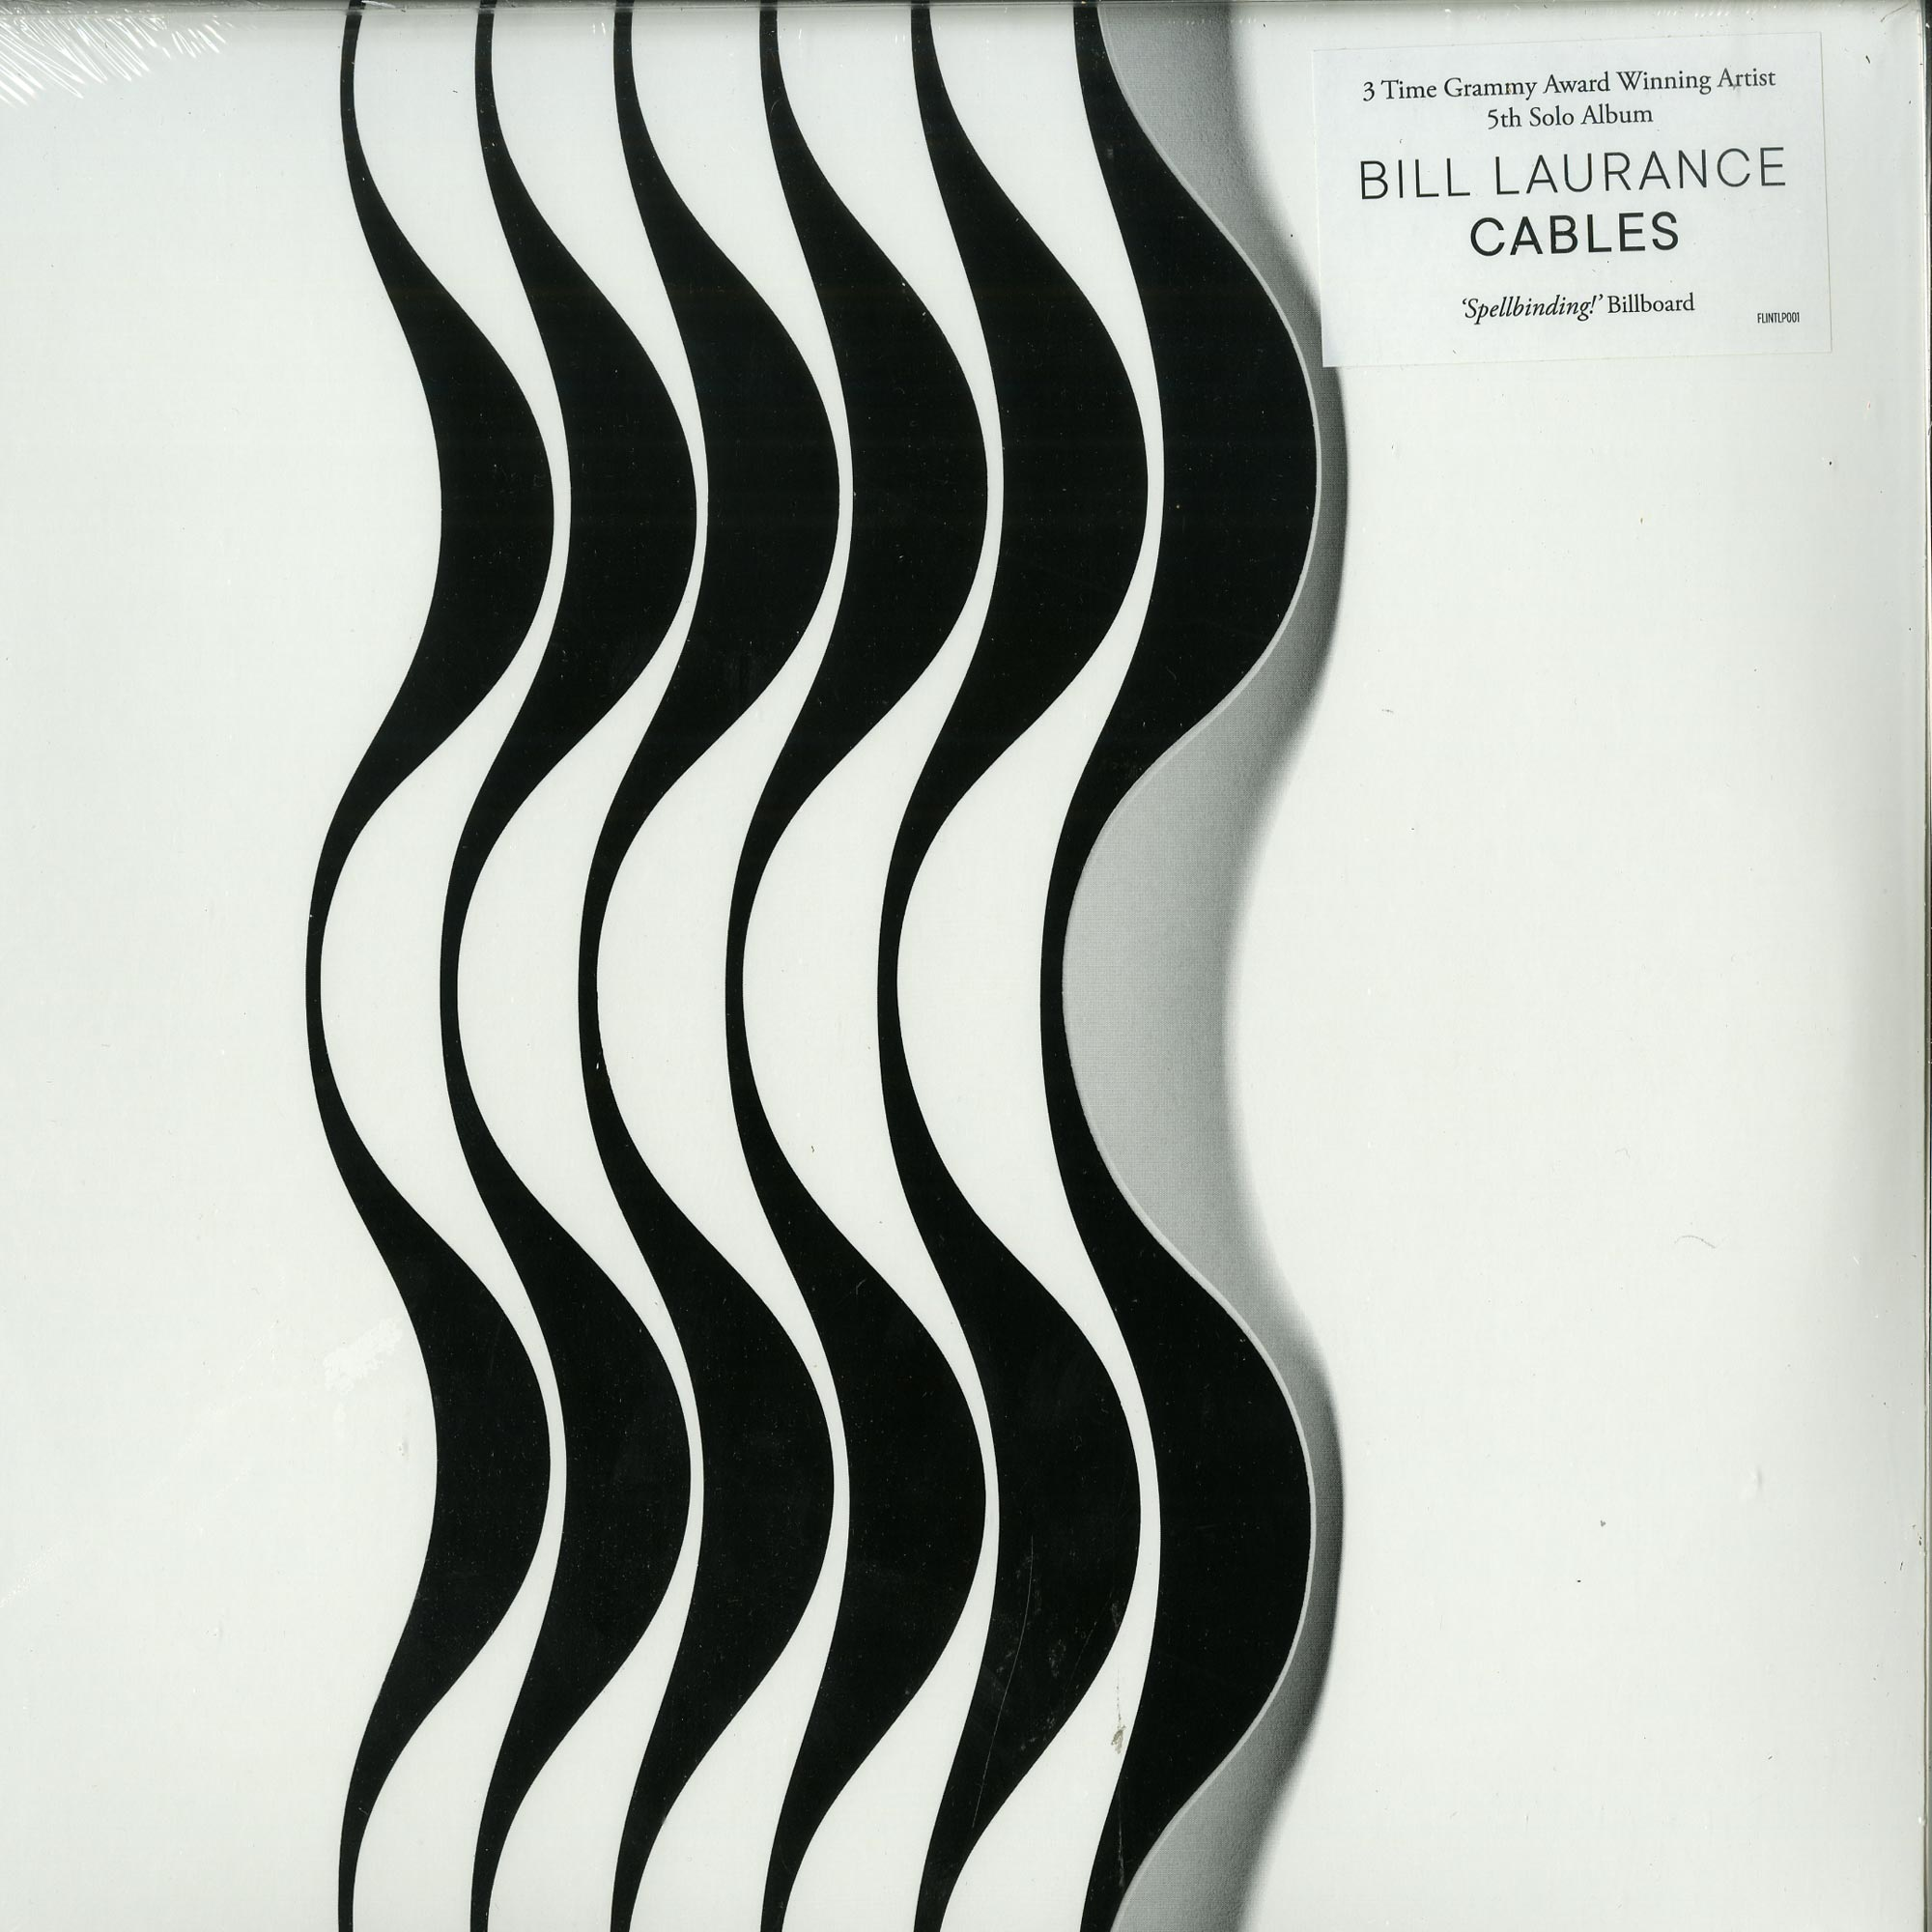 Bill Laurance - CABLES